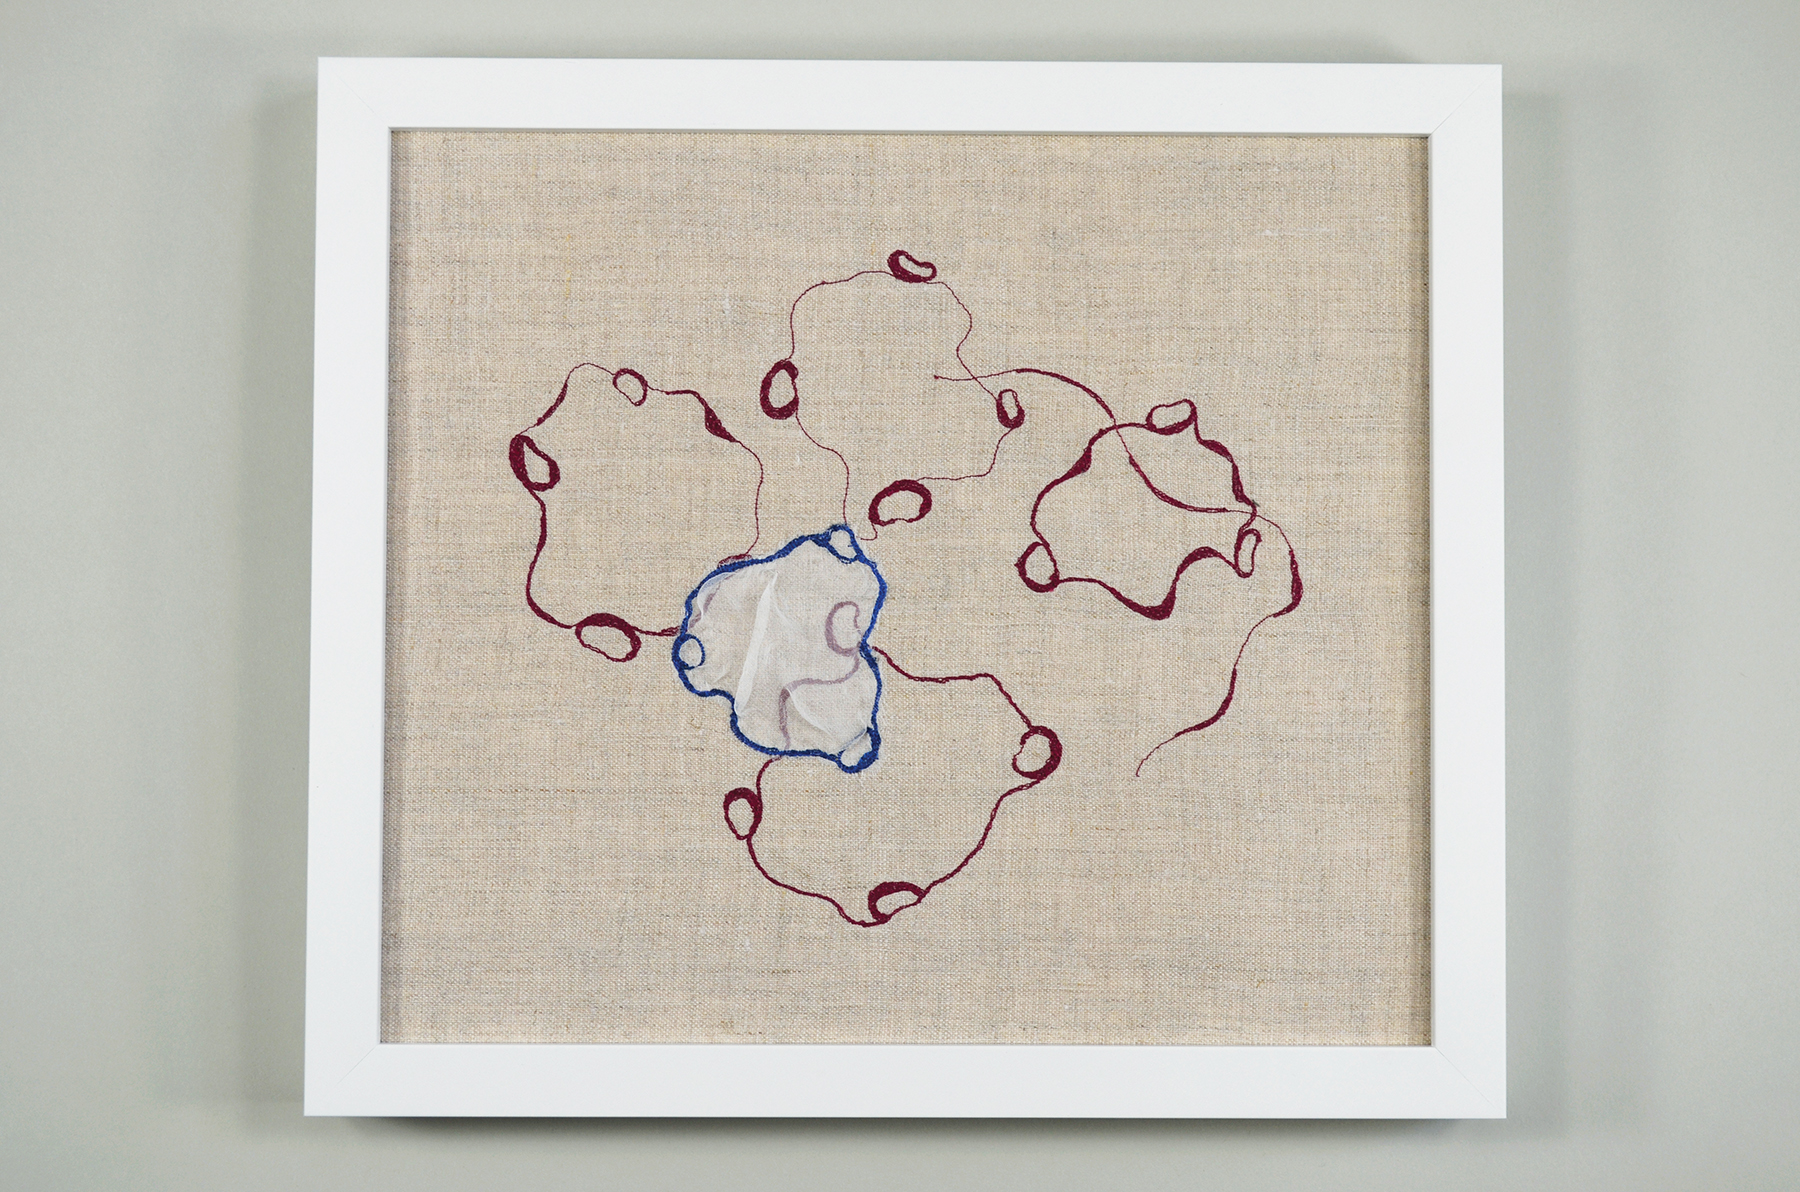 Embroidery Drawing #2